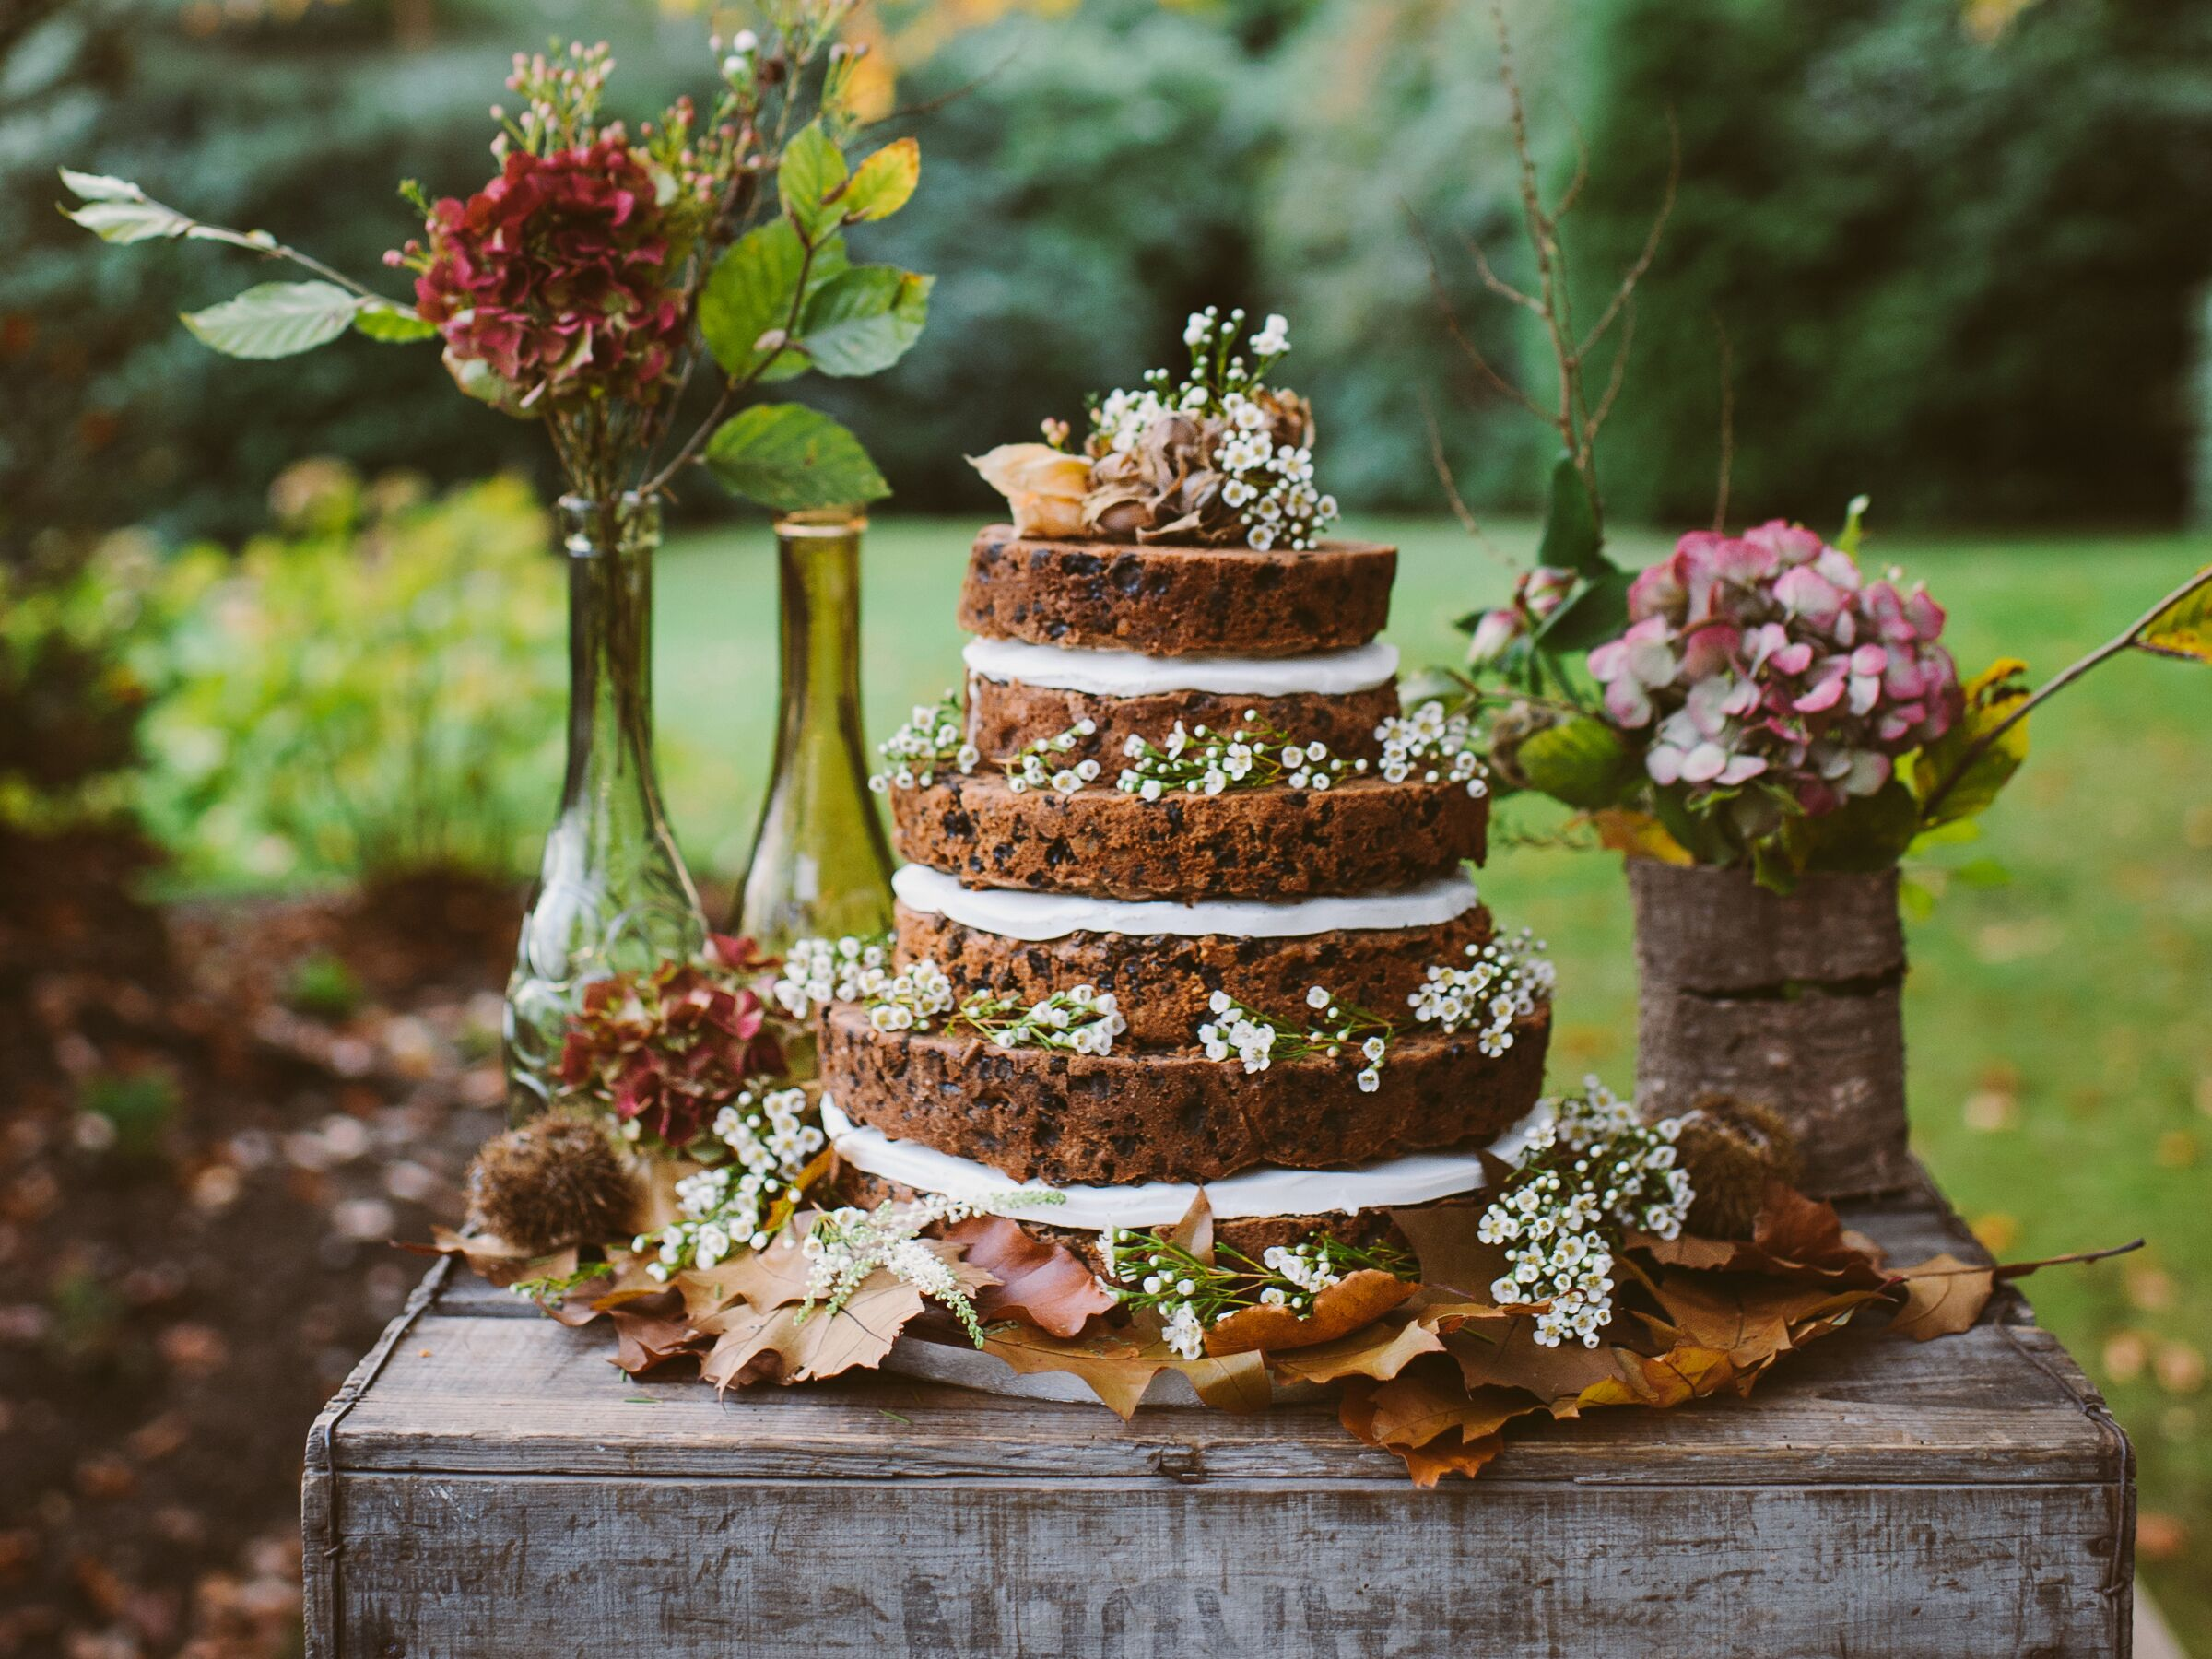 Traditional German Wedding Gifts: A World Tour Of Wedding Cake Traditions